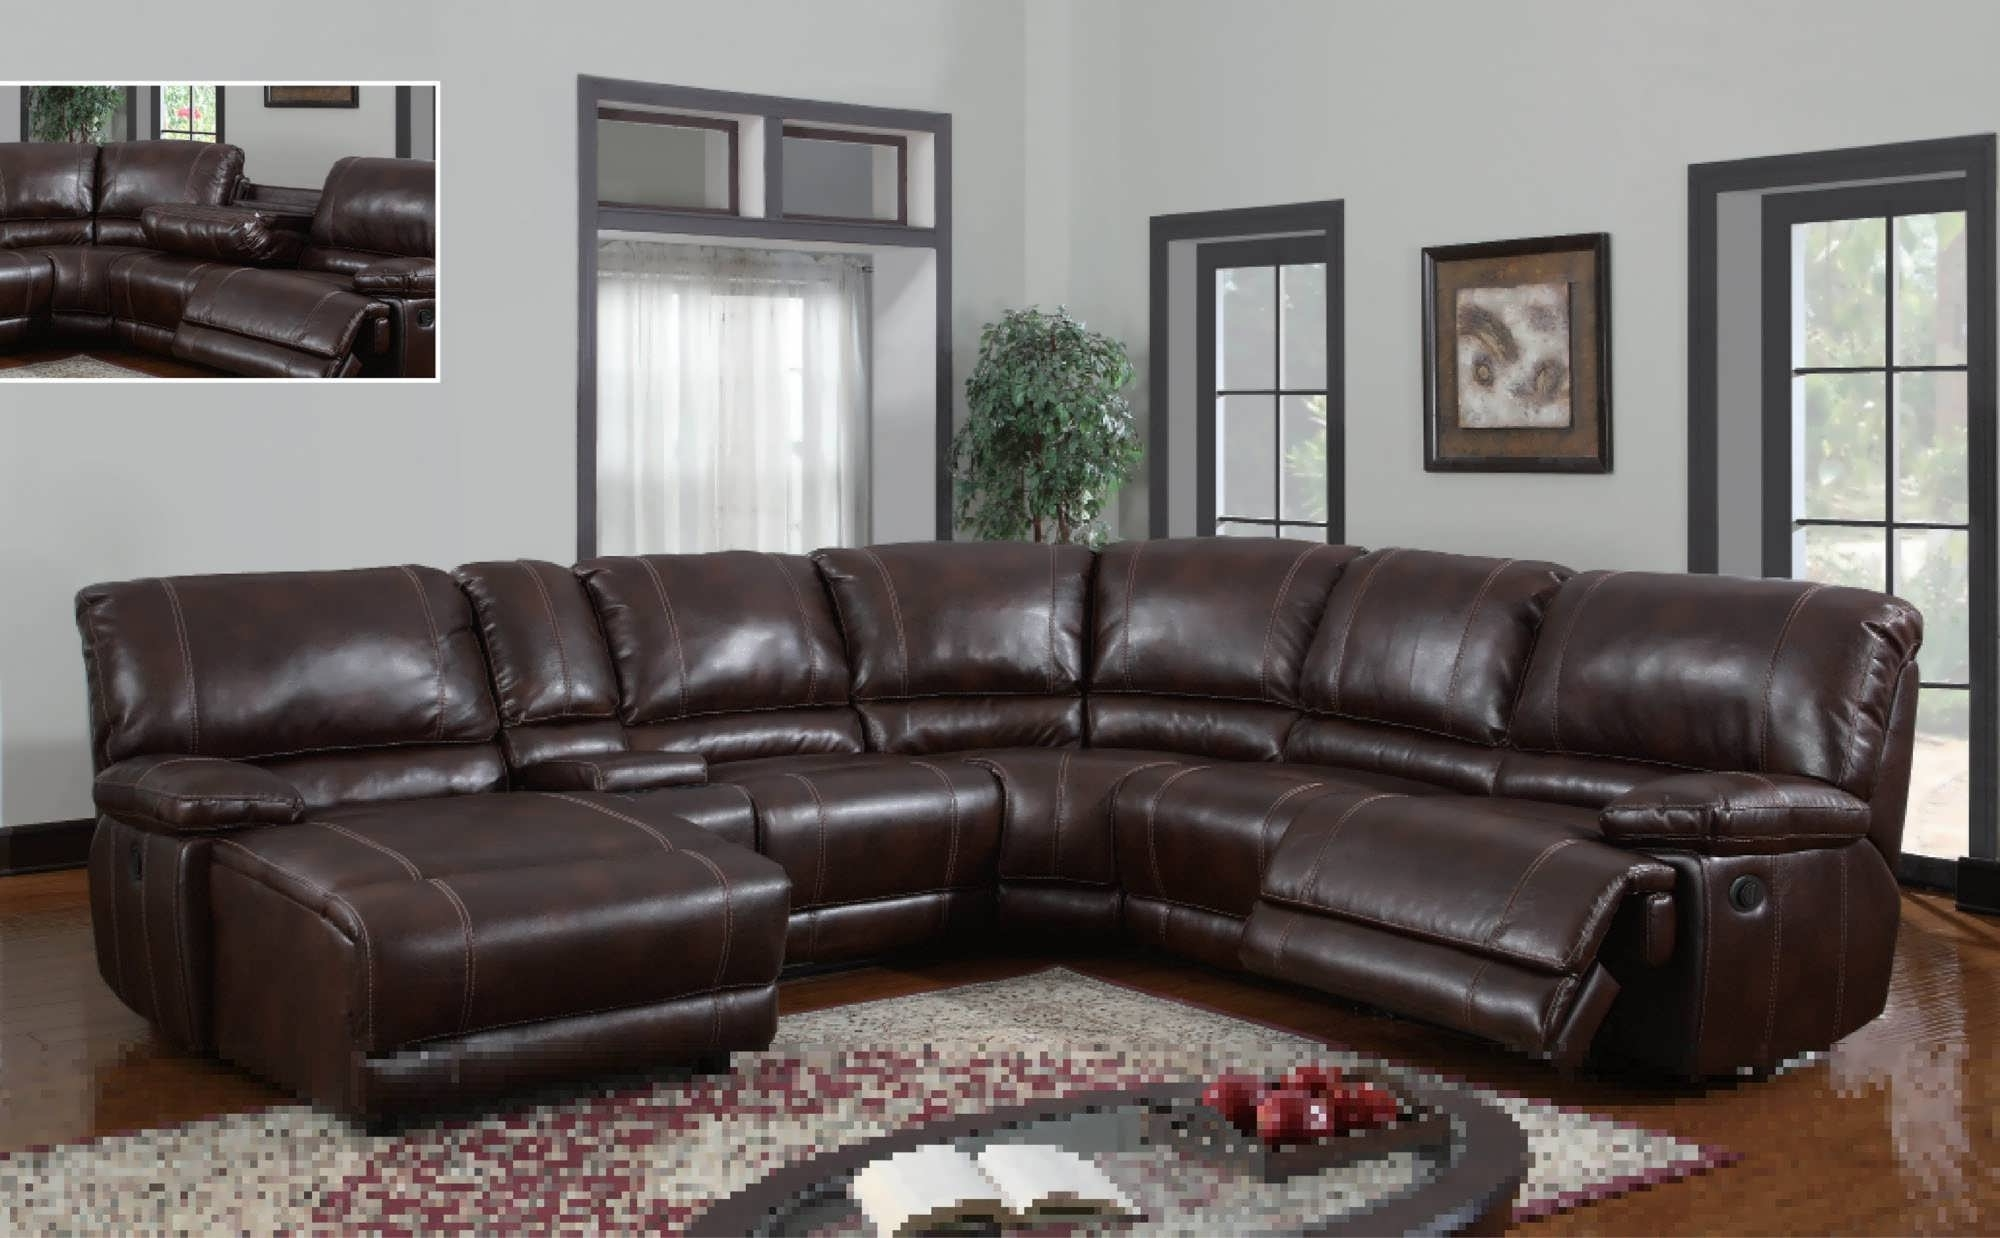 Sofa : Small Leather Sectional Modern Sectional Living Room Throughout Newest Genuine Leather Sectionals With Chaise (View 14 of 15)